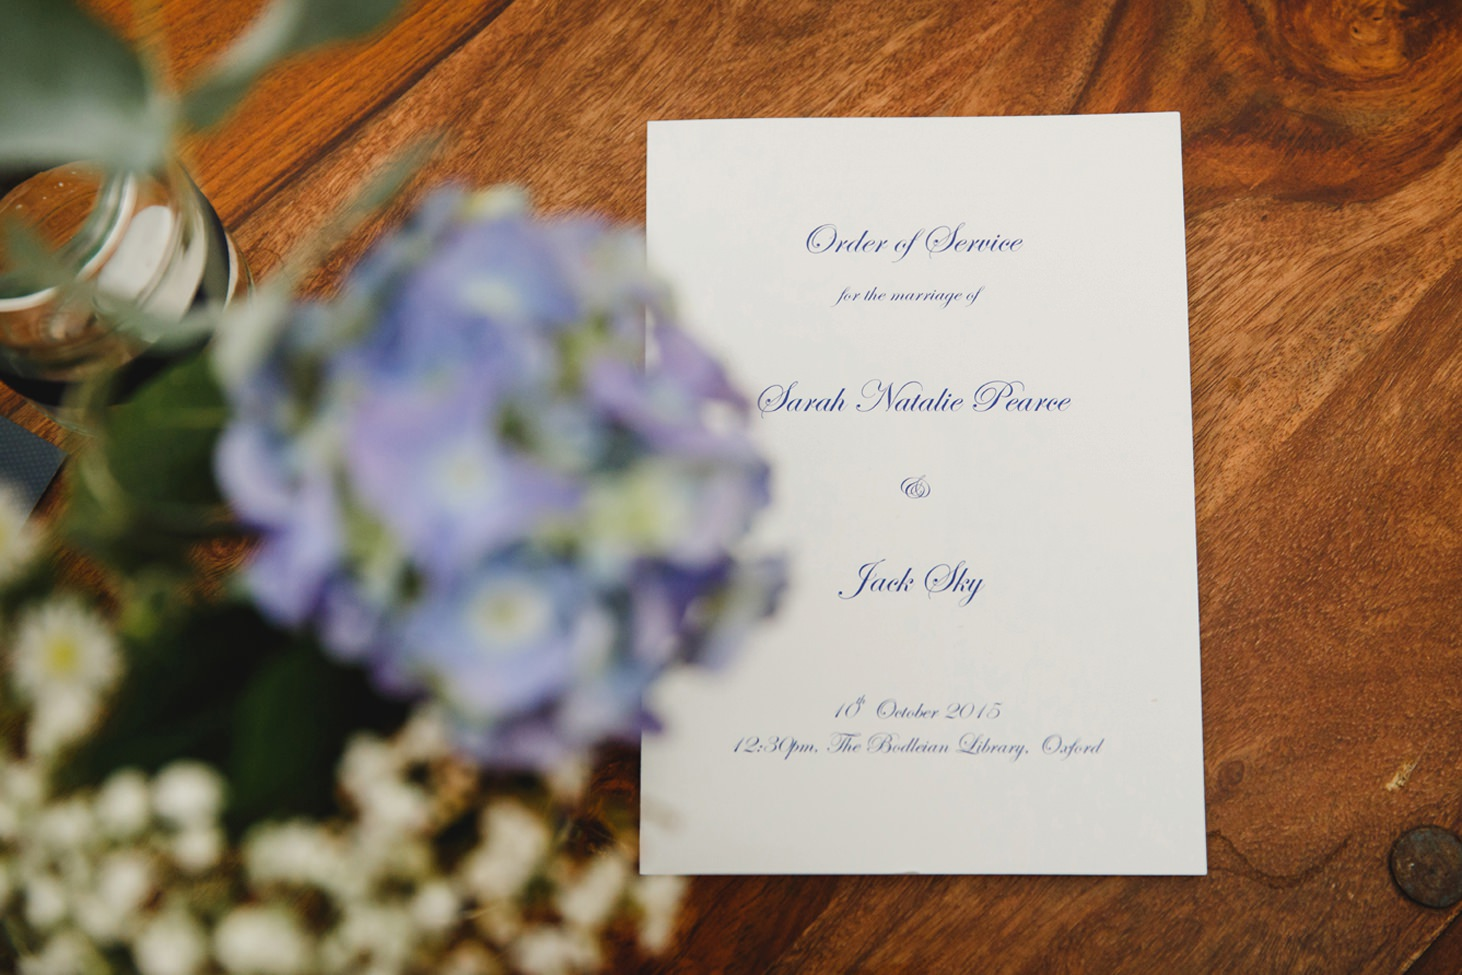 Bodleian library wedding order of service